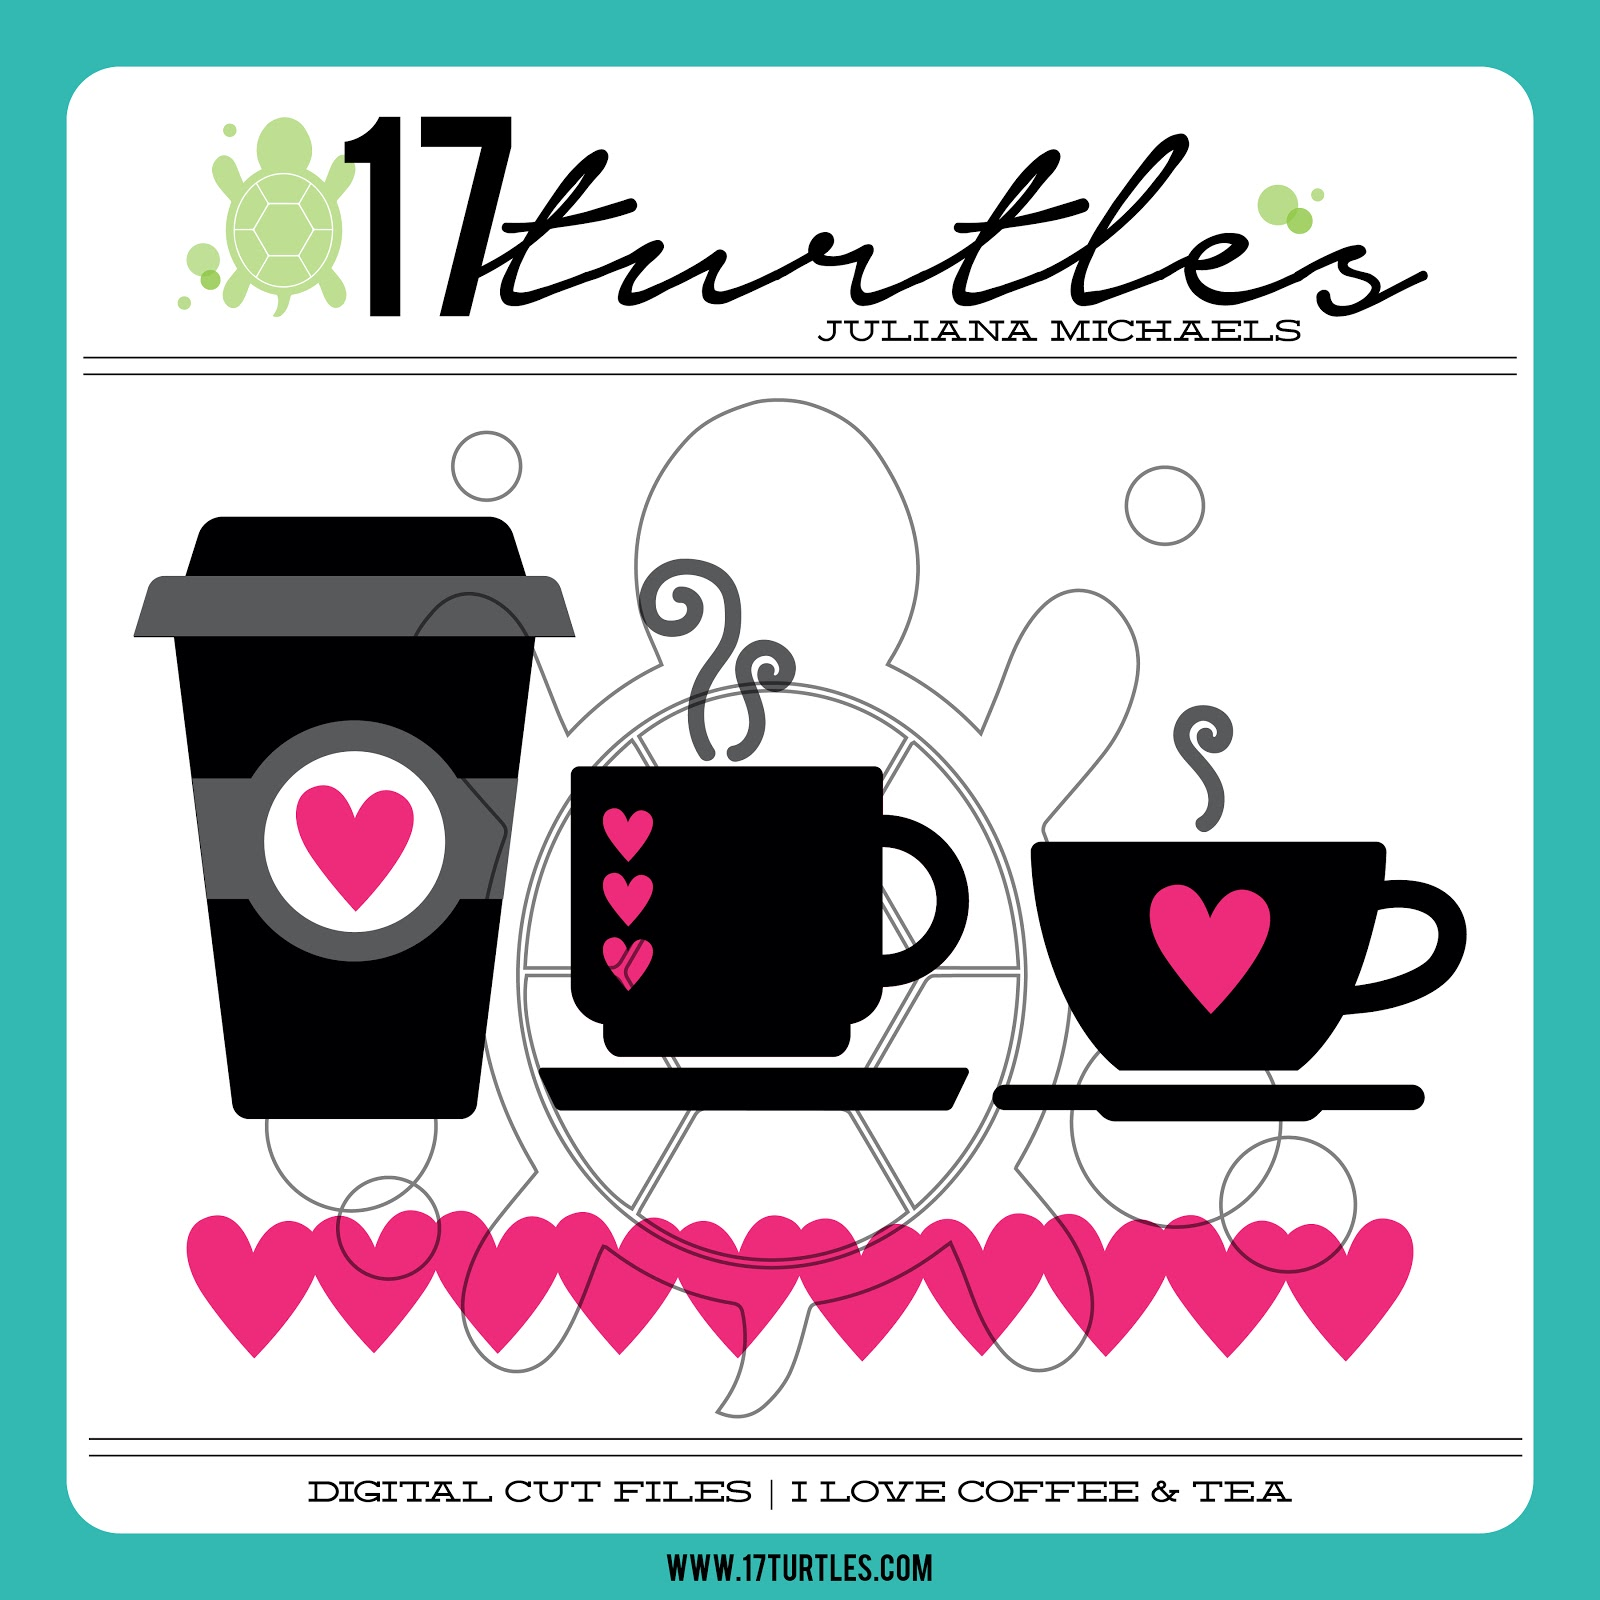 I Love Coffee & Tea Digital Cut File by 17turtles Juliana Michaels